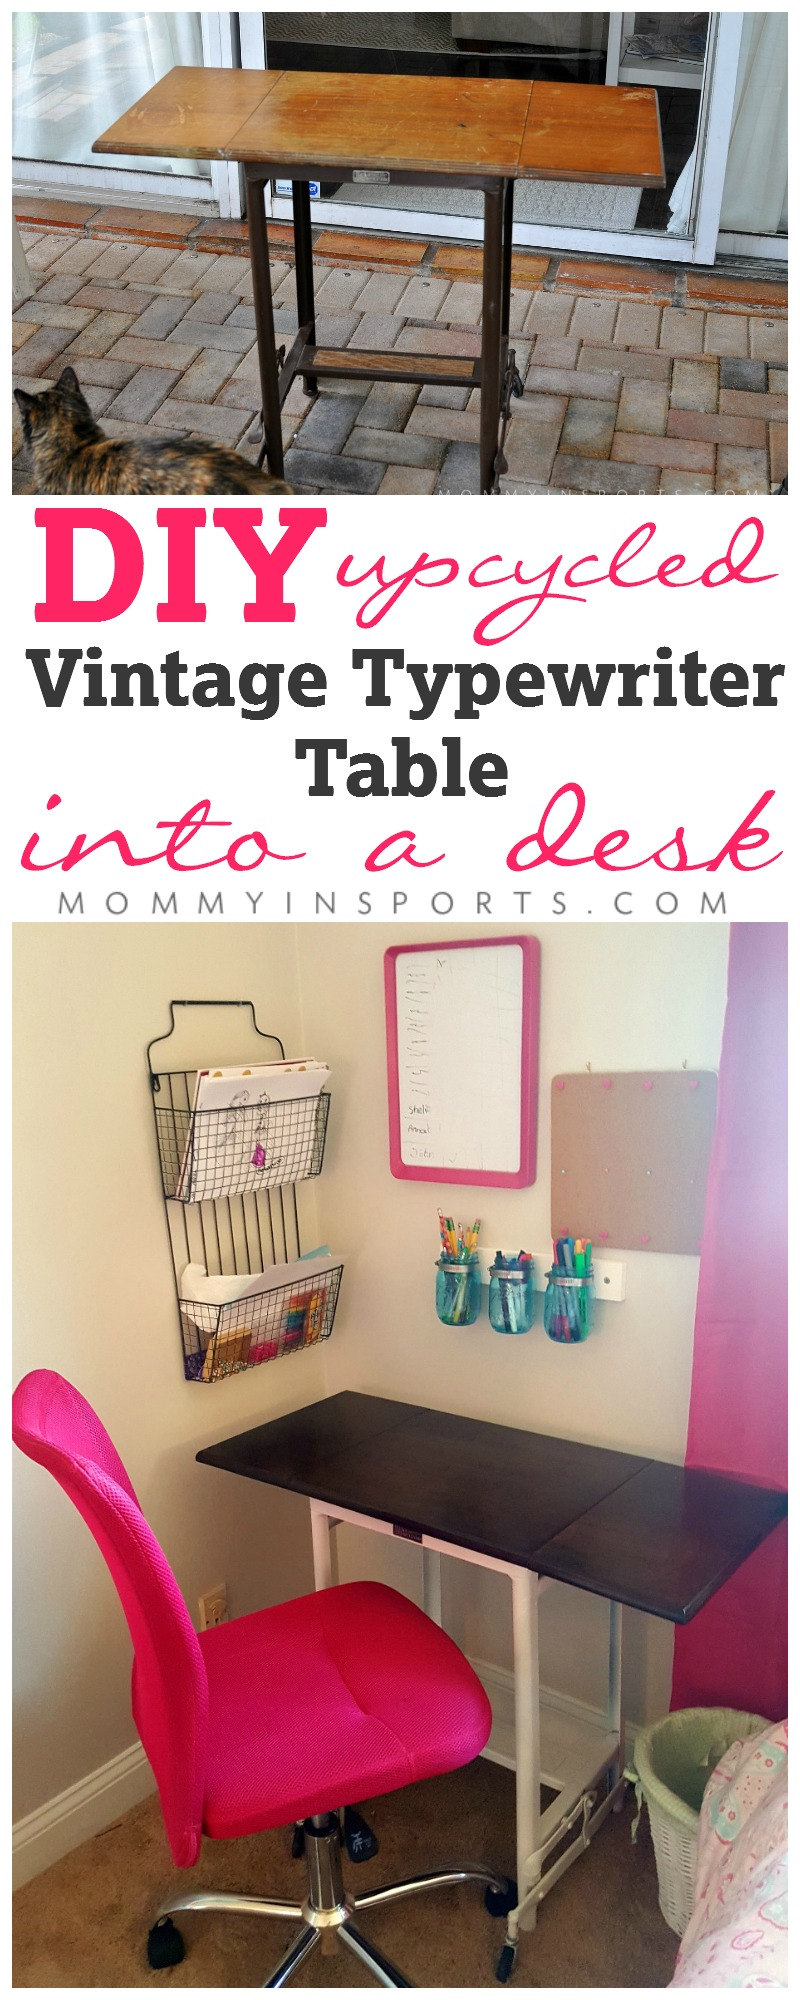 Upcycle a vintage typewriter table into a super cute kid's desk in an afternoon. Don't spend big bucks when you can make something old beautiful and new again! The perfect afternoon DIY project.